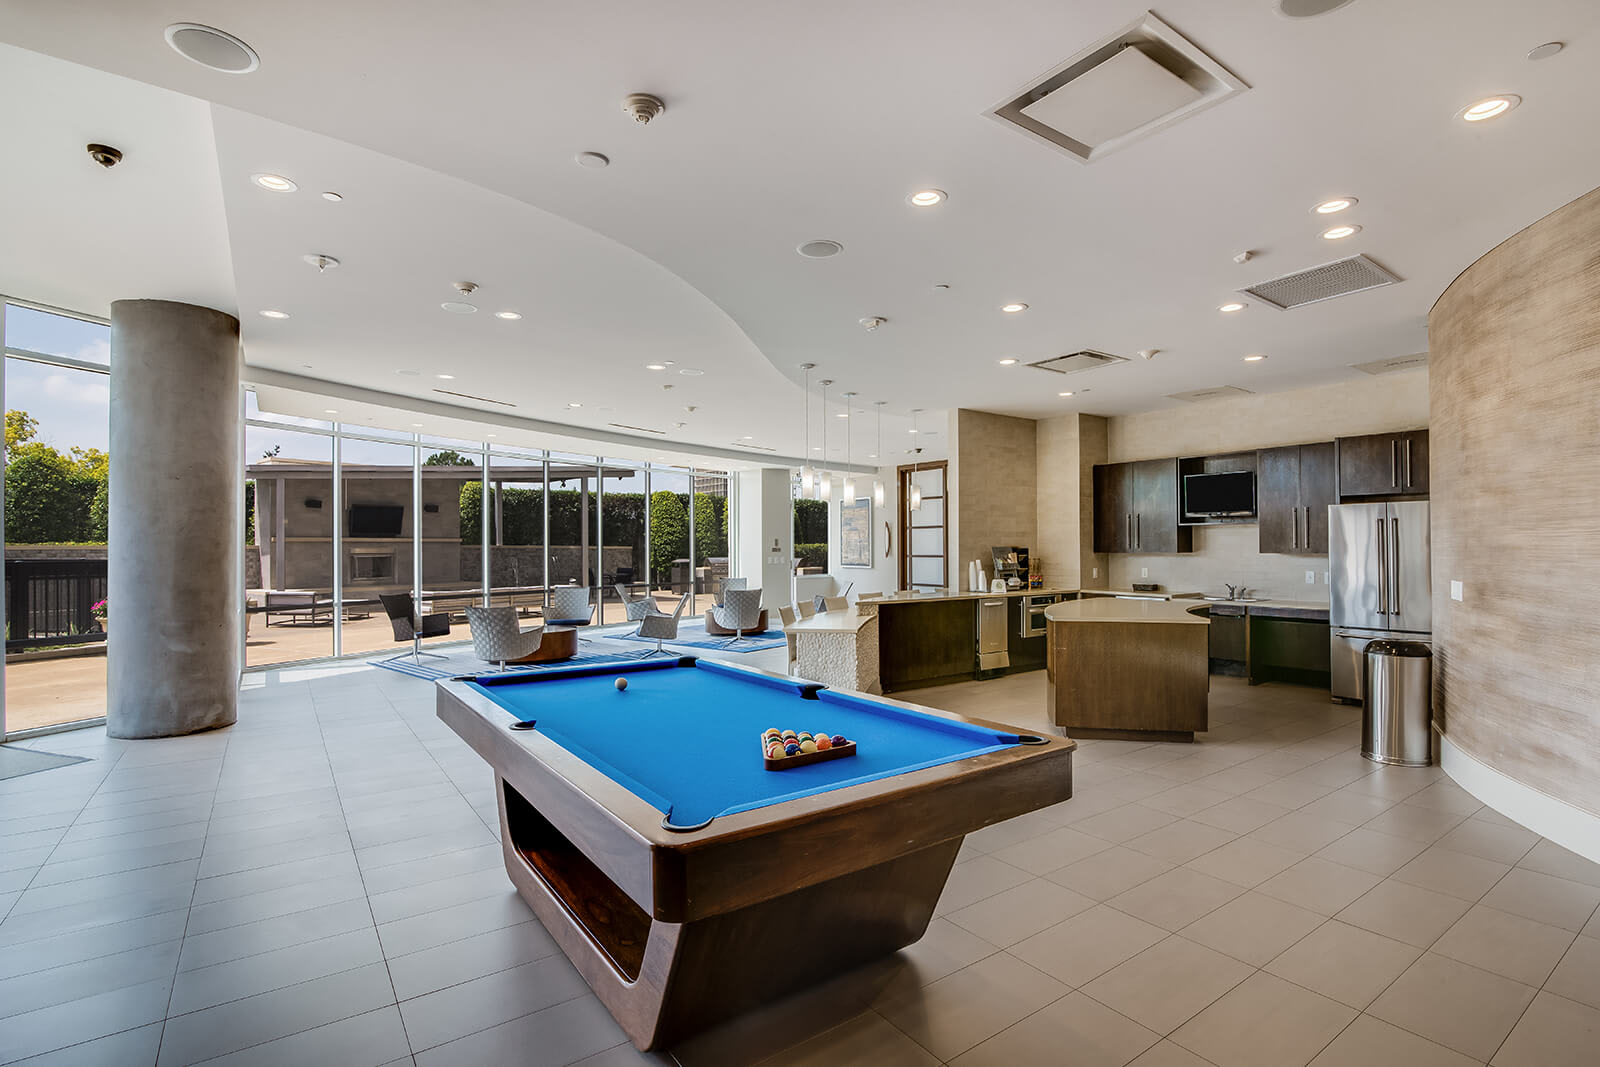 W Lounge with Full Catering Kitchen and Billiards Table at Memorial by Windsor, 3131 Memorial Court, Houston